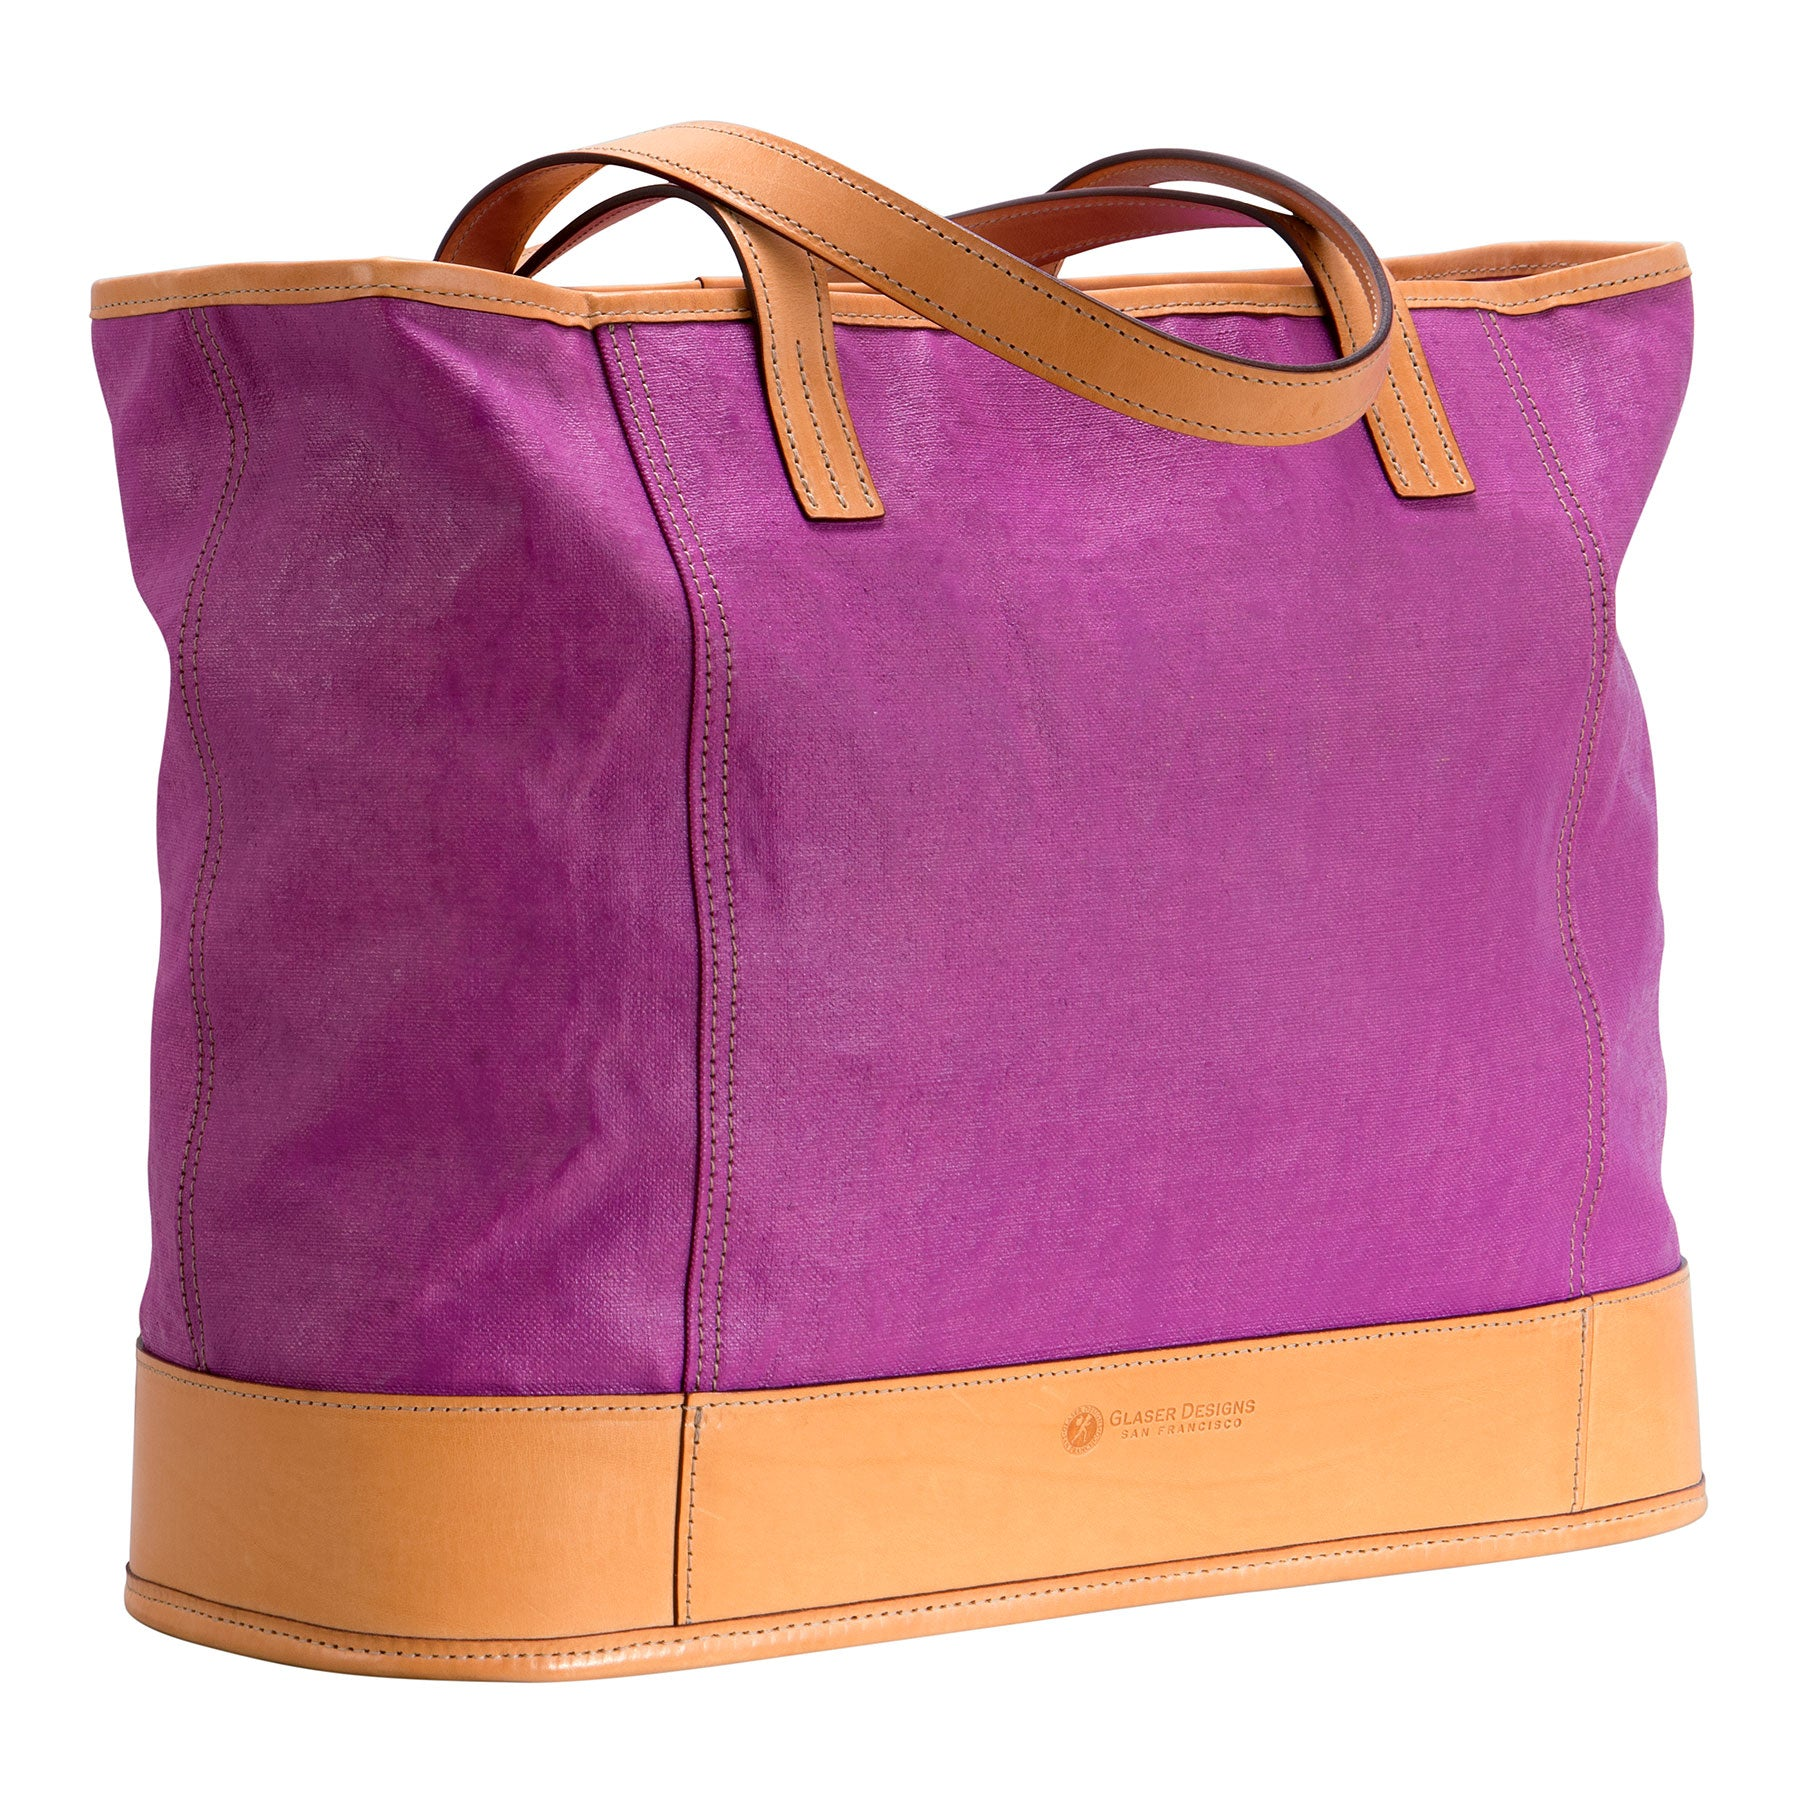 Pedestal Tote: hand-painted linen, hand-burnished leather